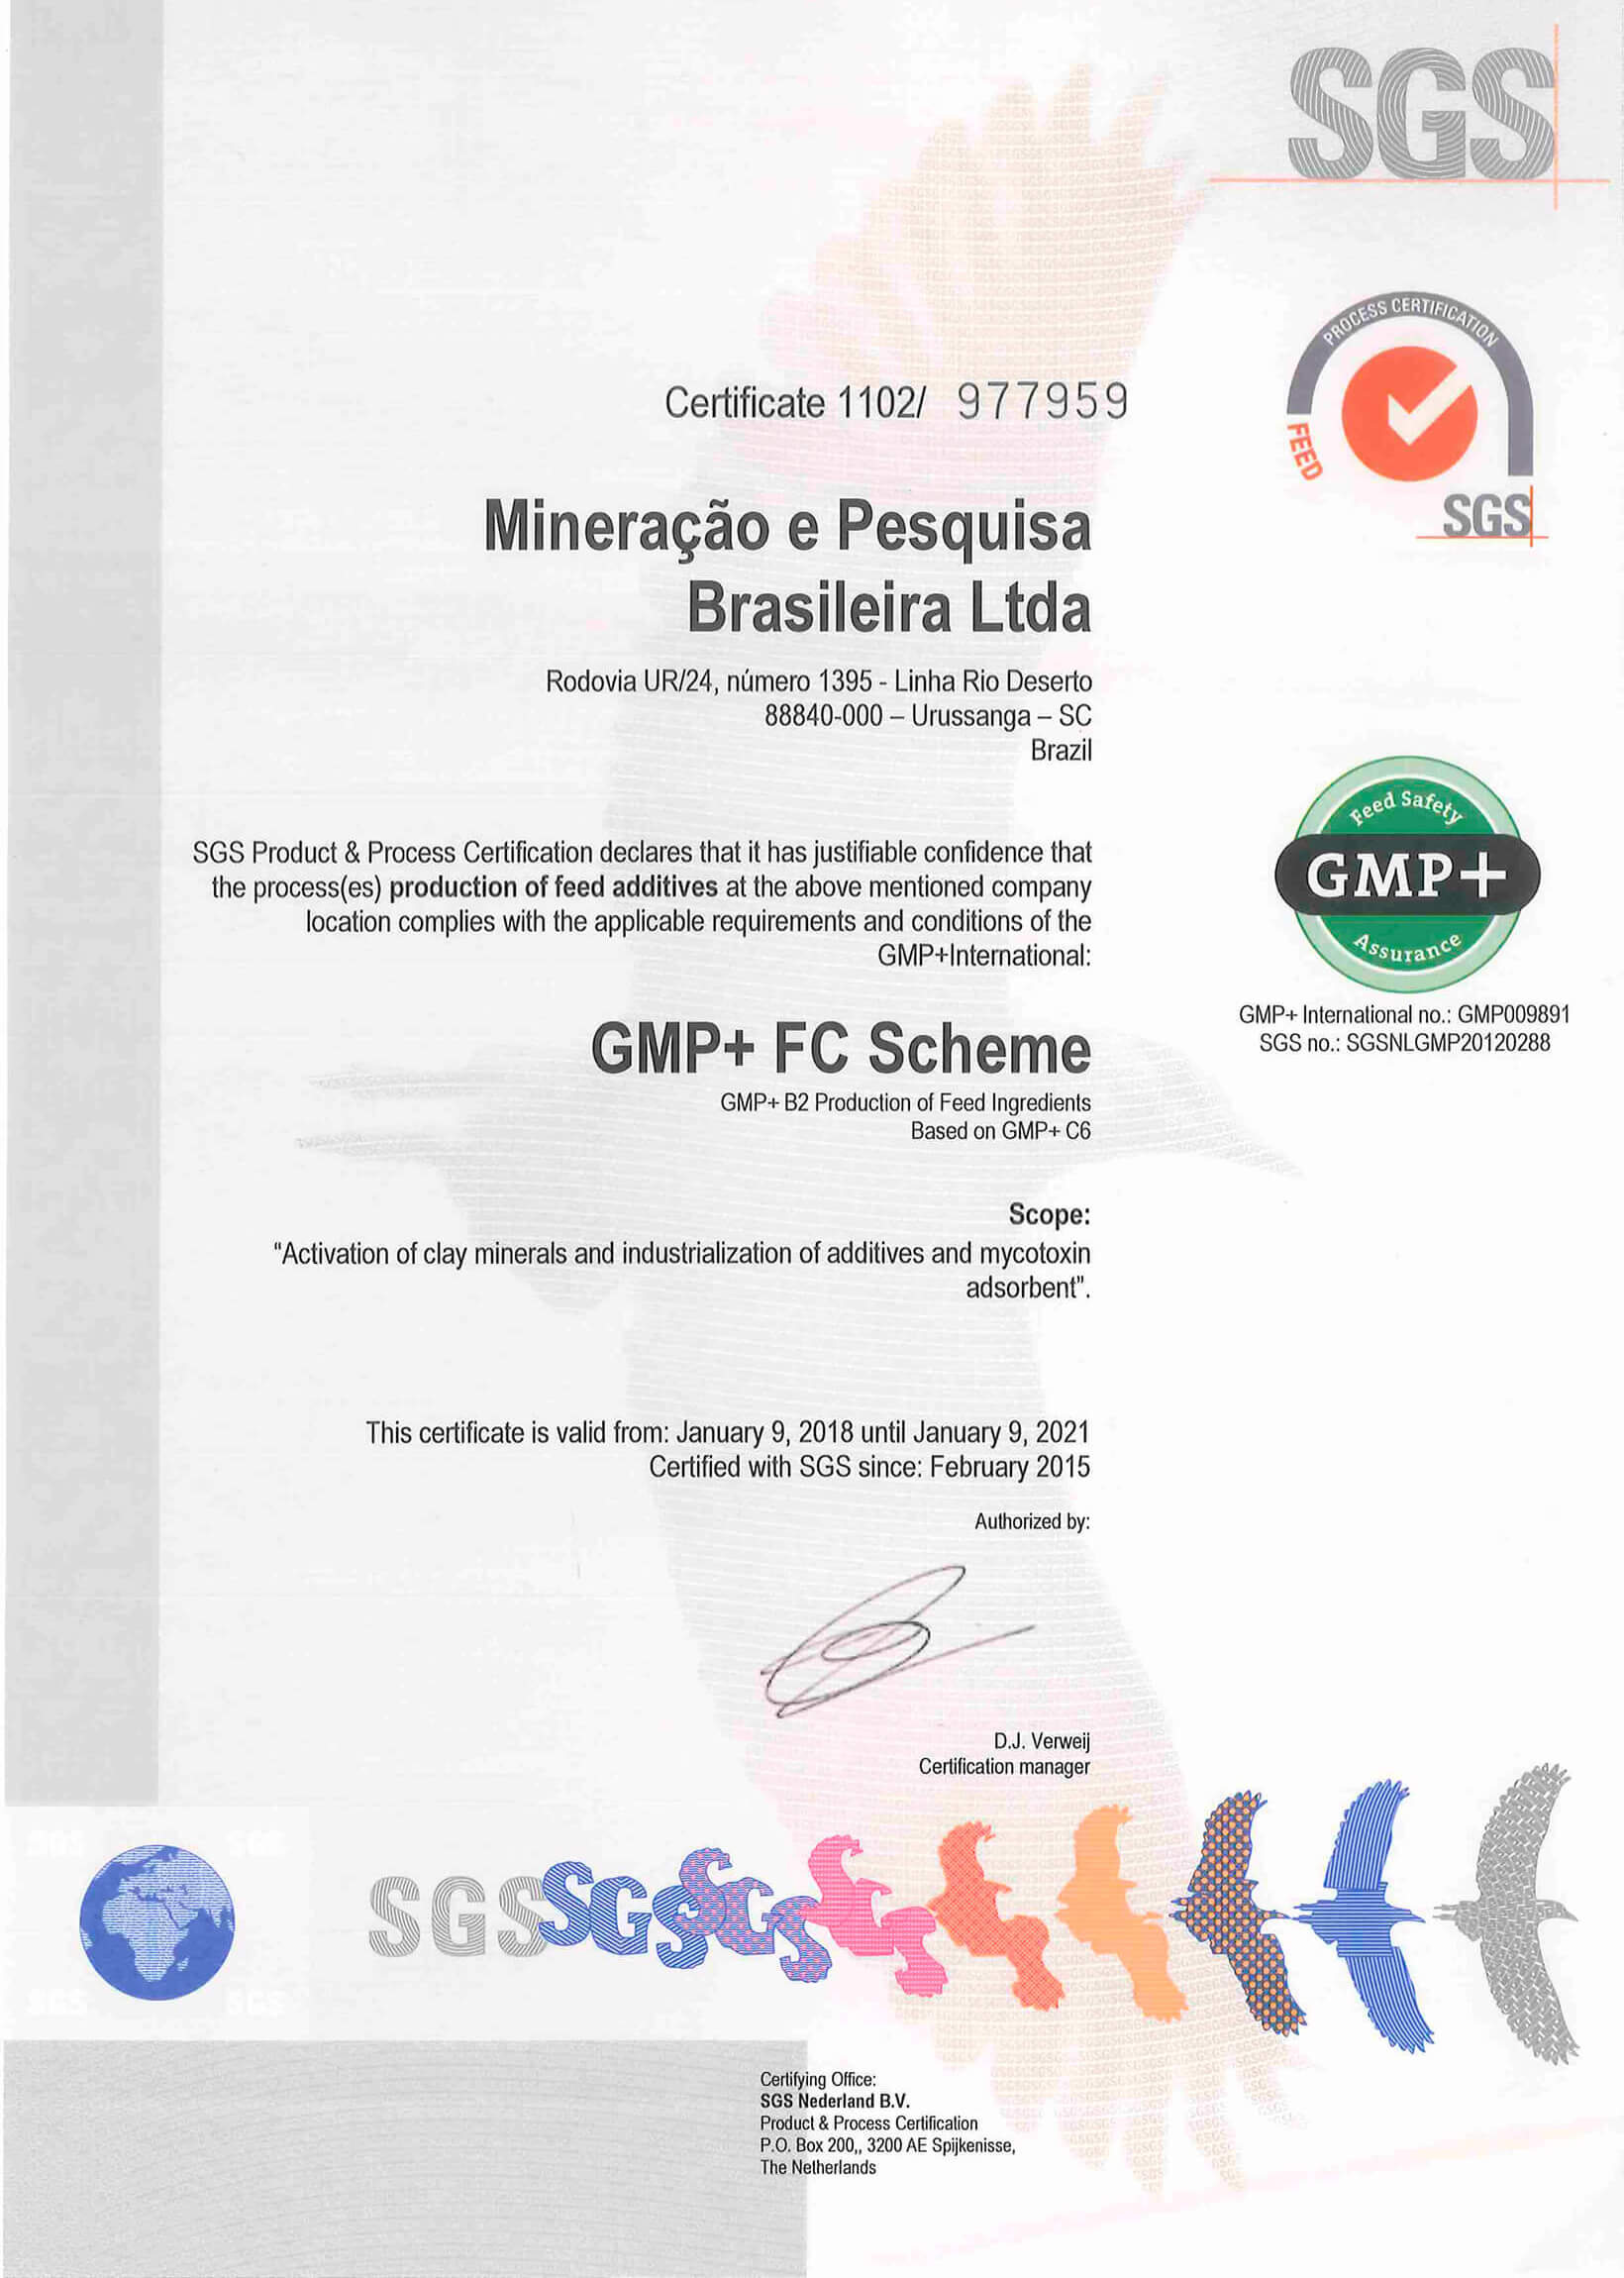 Certificada na GMP + B2 Production of Feed Ingredients